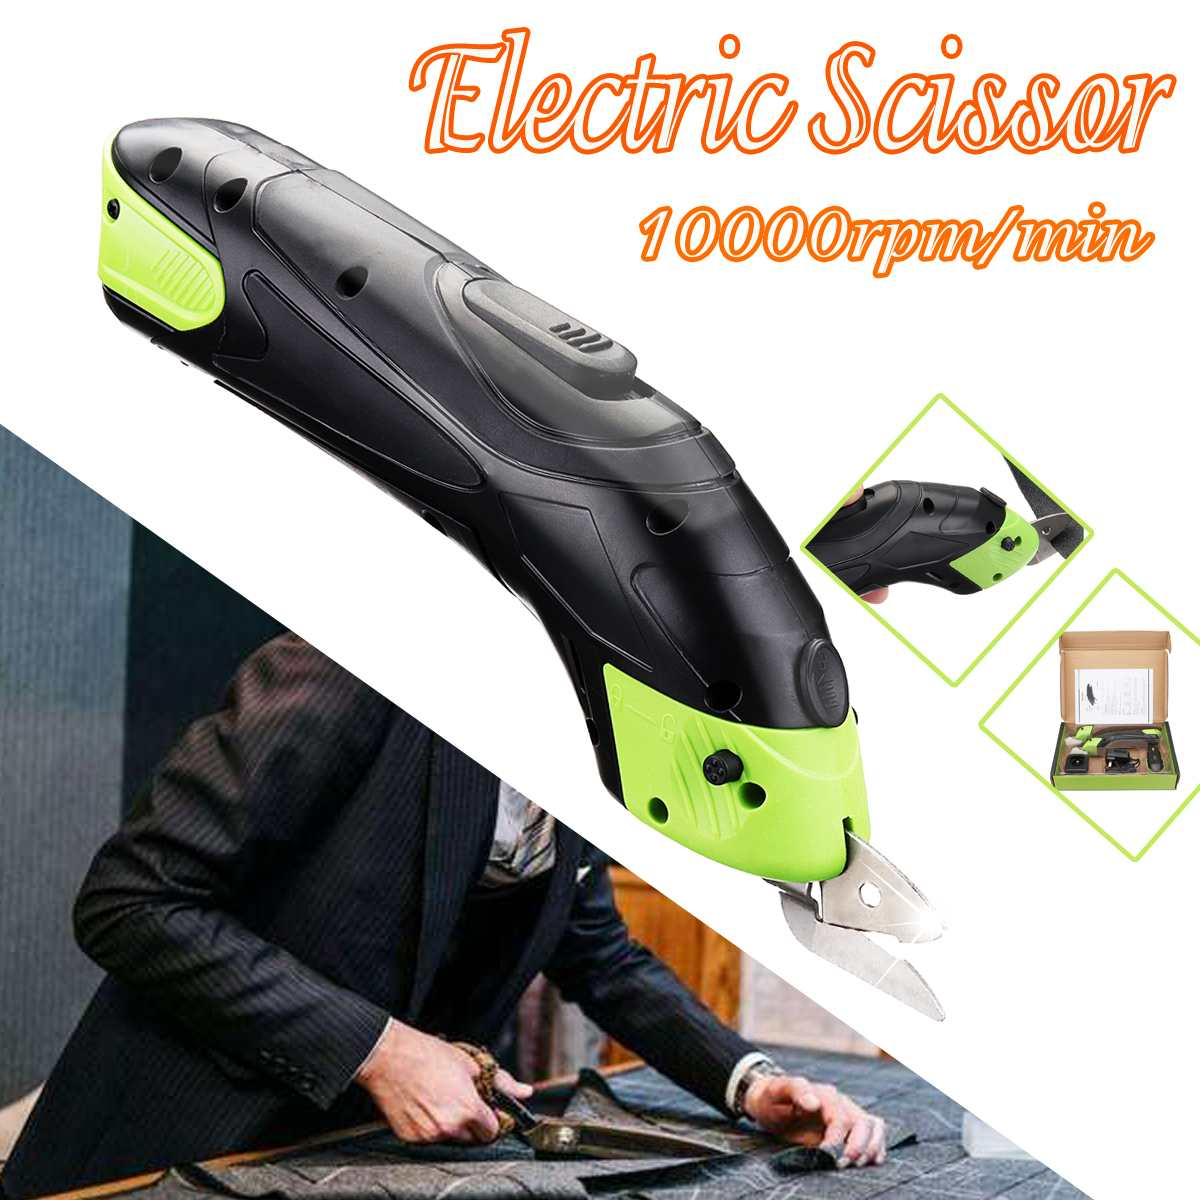 Doersupp 3.6V Multipurpose Cordless Electric Scissor Auto Cutter Chargeable Fabric Sewing Scissors Handheld Wth 2 BatteryDoersupp 3.6V Multipurpose Cordless Electric Scissor Auto Cutter Chargeable Fabric Sewing Scissors Handheld Wth 2 Battery